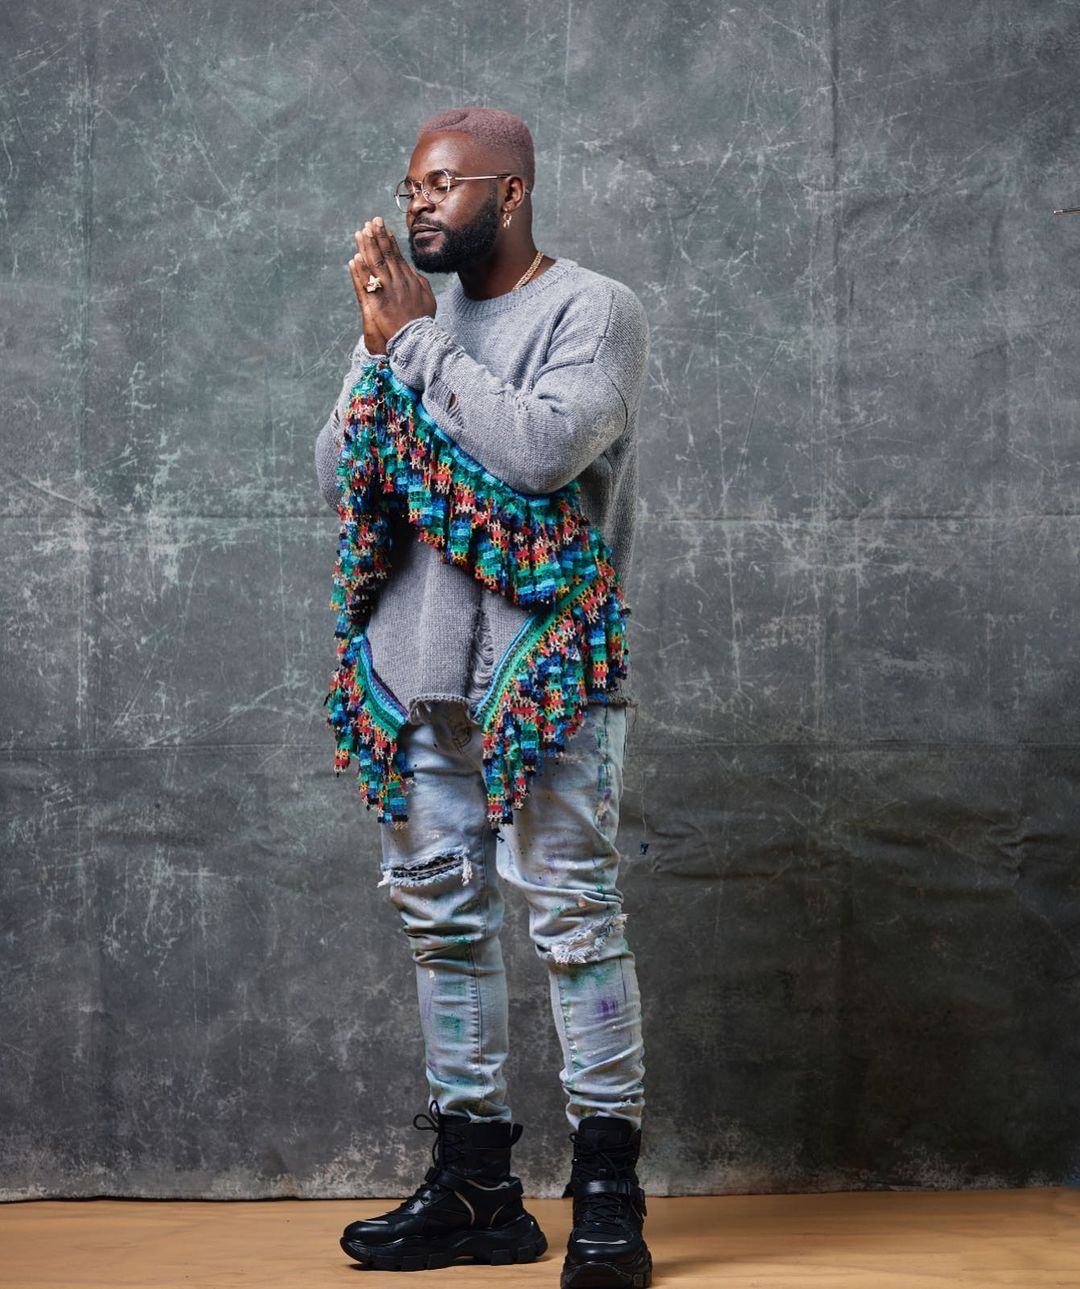 falz-30th-birthday-amy-coney-barrett-supreme-court-paul-pogba-fake-reports-legal-action-latest-news-global-world-stories-tuesday-october-2020-style-rave